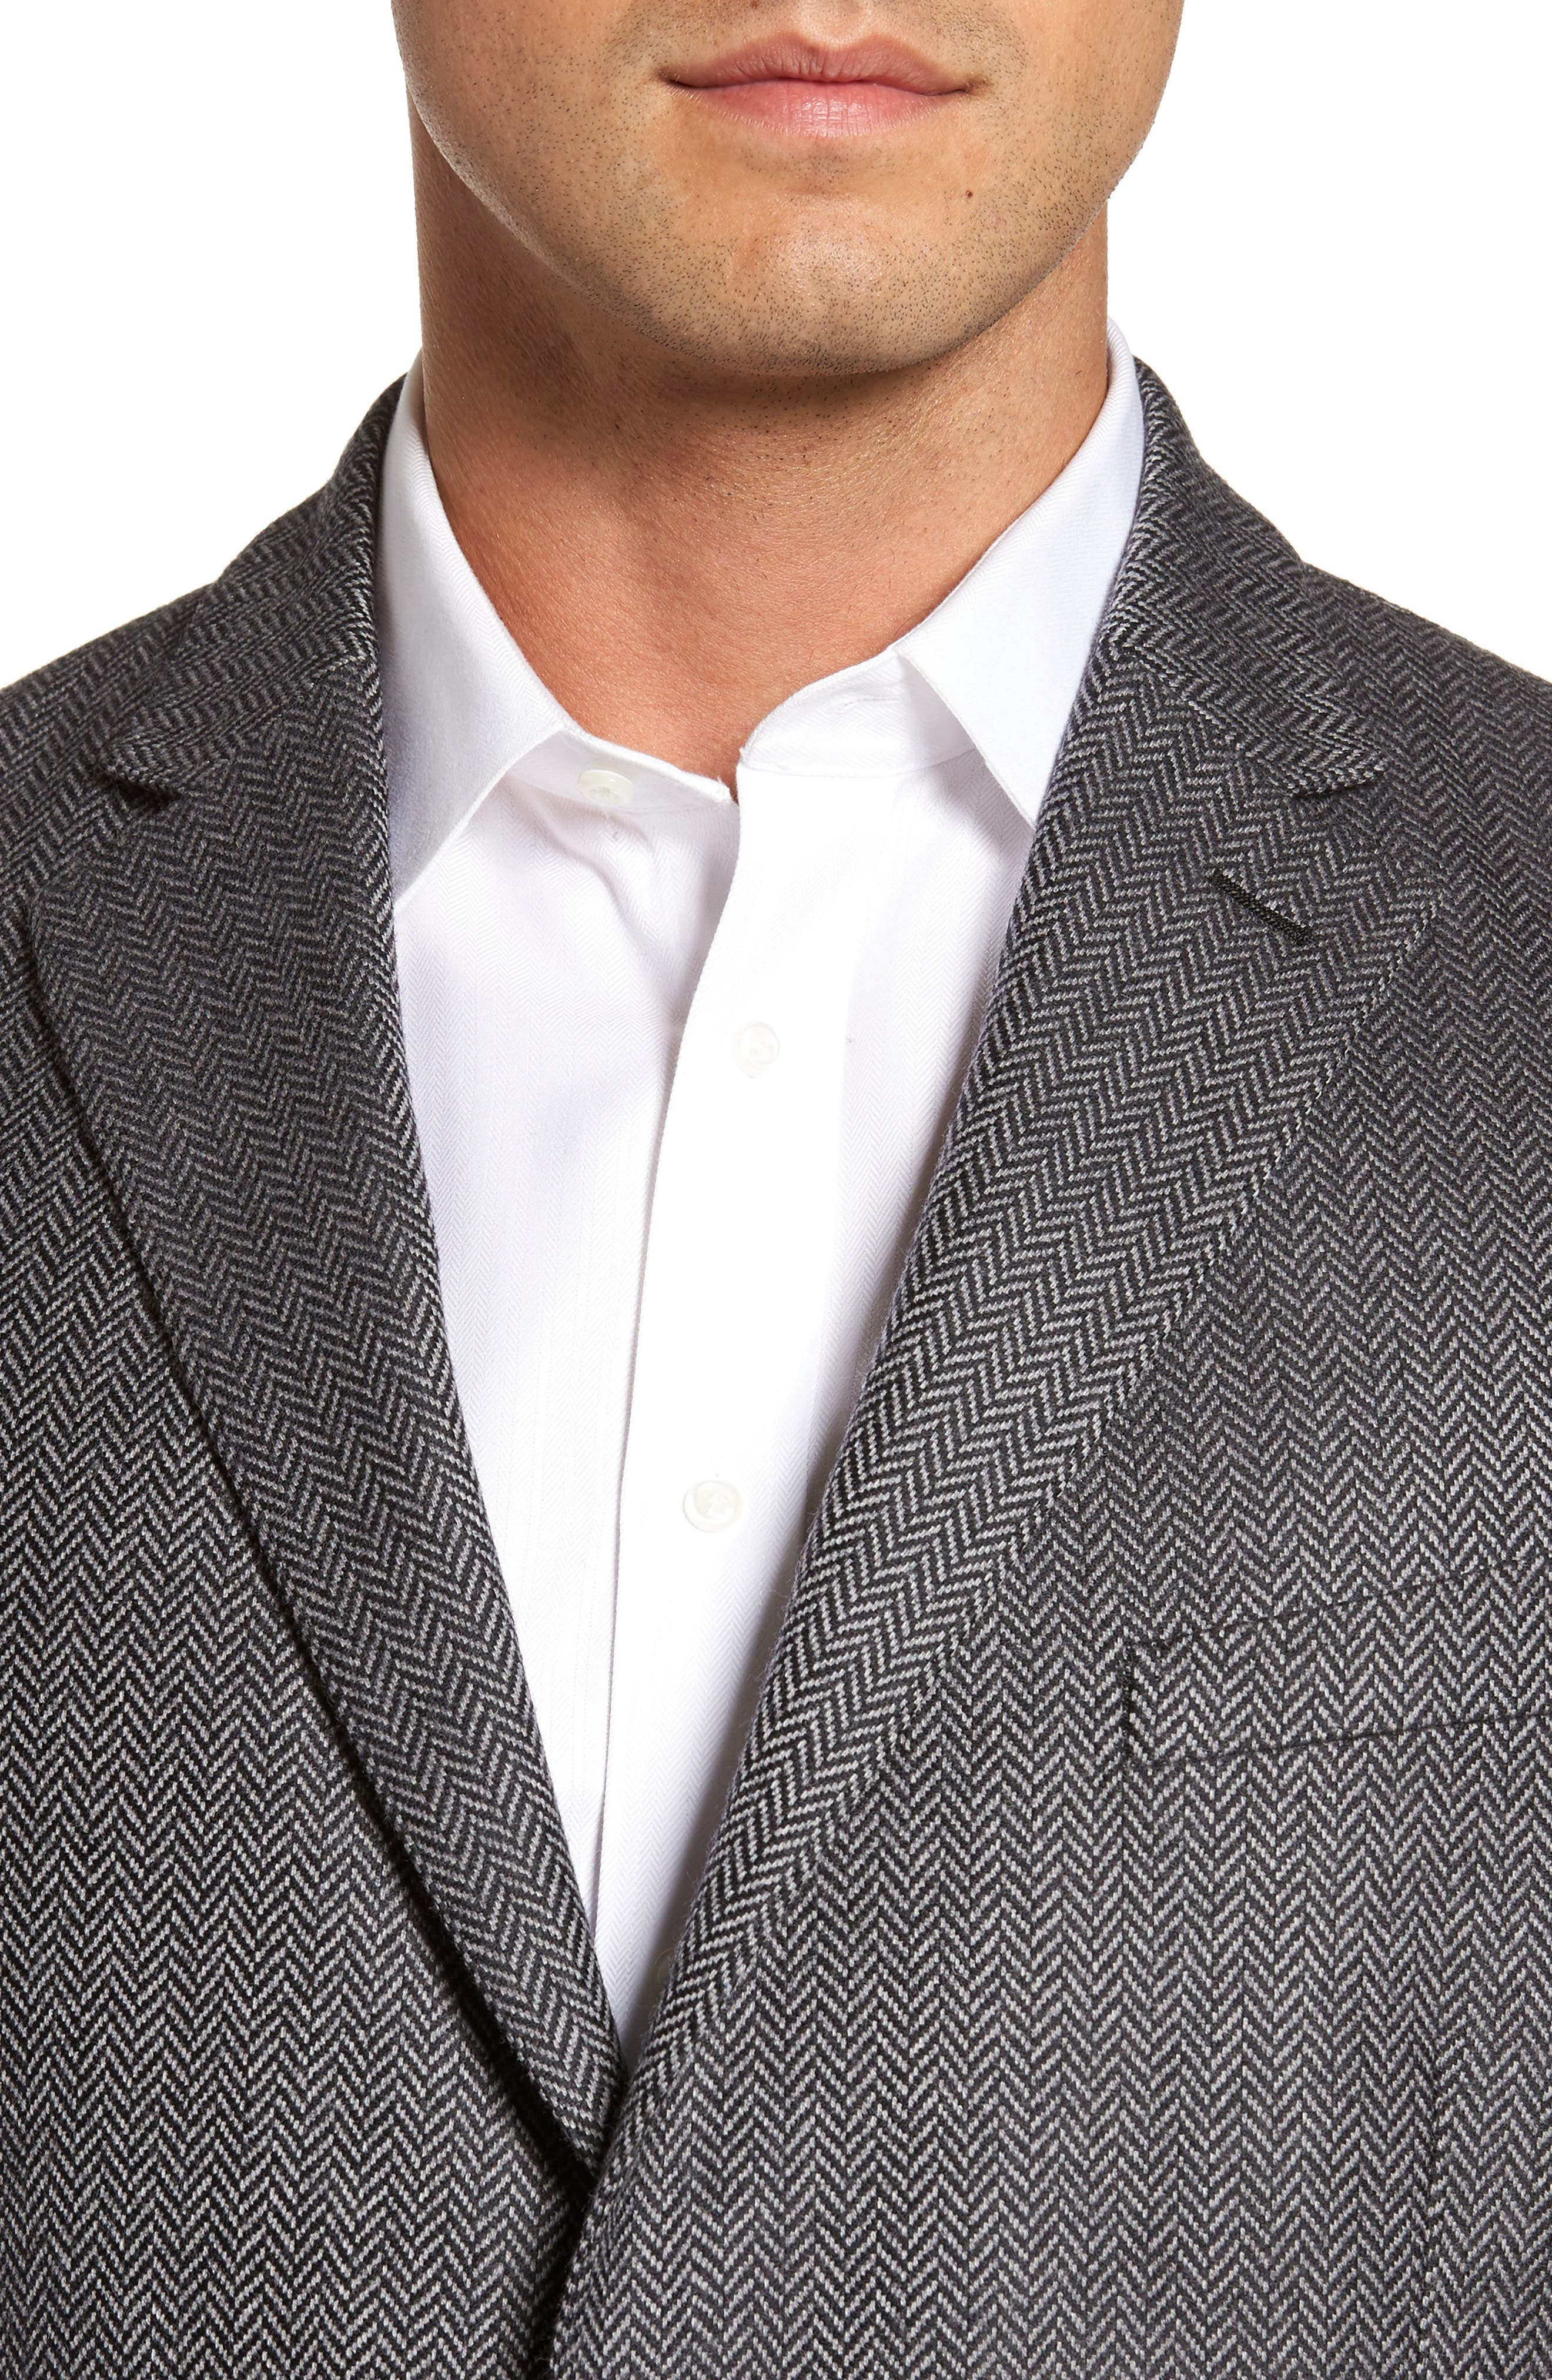 Classic Fit Herringbone Wool & Cashmere Jersey Sport Coat,                             Alternate thumbnail 4, color,